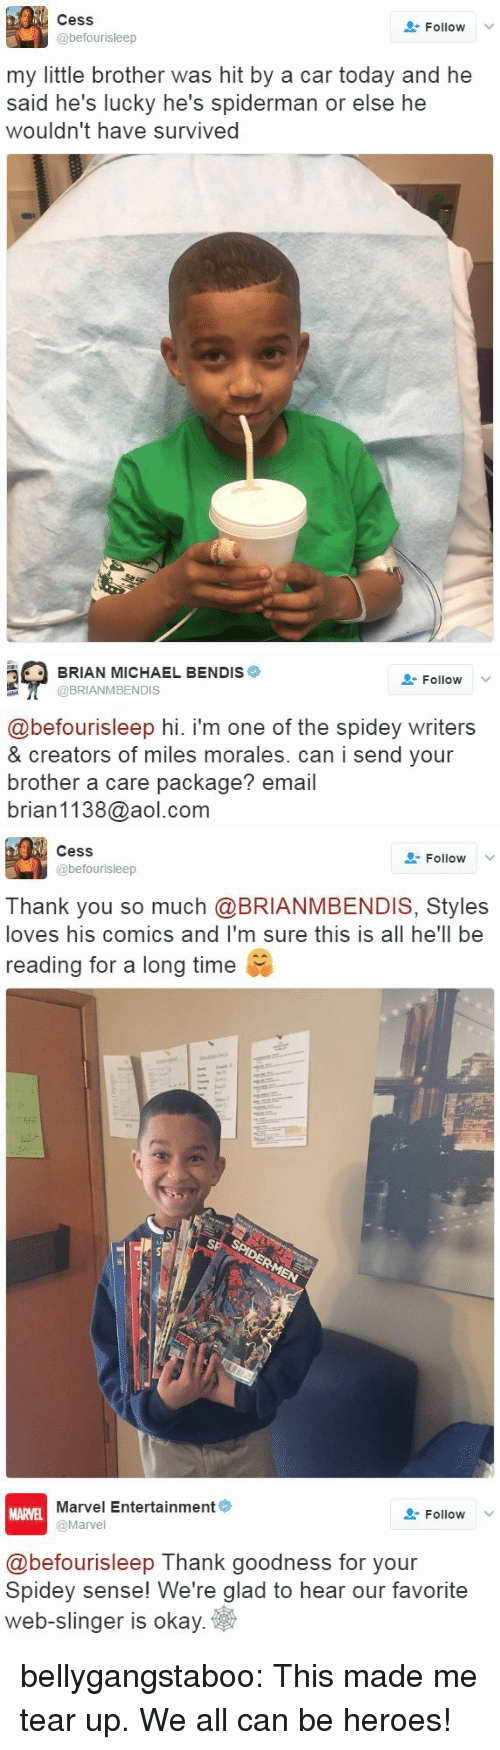 Tumblr, Thank You, and aol.com: Cess  @befourisleep  Follow  my little brother was hit by a car today and he  said he's lucky he's spiderman or else he  wouldn't have survived   BRIAN MICHAEL BENDIS*  @BRIANMBENDIS  Follow  @befourisleep hi. i'm one of the spidey writers  & creators of miles morales. can i send your  brother a care package? email  brian1138@aol.com   Cess  @befourisleep  Follow  Thank you so much @BRIANMBENDIS, Styles  loves his comics and I'm sure this is all he'll be  reading for a long time   Marvel Entertainment  @Marvel  MARVEL  Follow  @befourisleep Thank goodness for your  Spidey sense! We're glad to hear our favorite  web-slinger is okay  ето и  ank goodness for vour bellygangstaboo:  This made me tear up.    We all can be heroes!